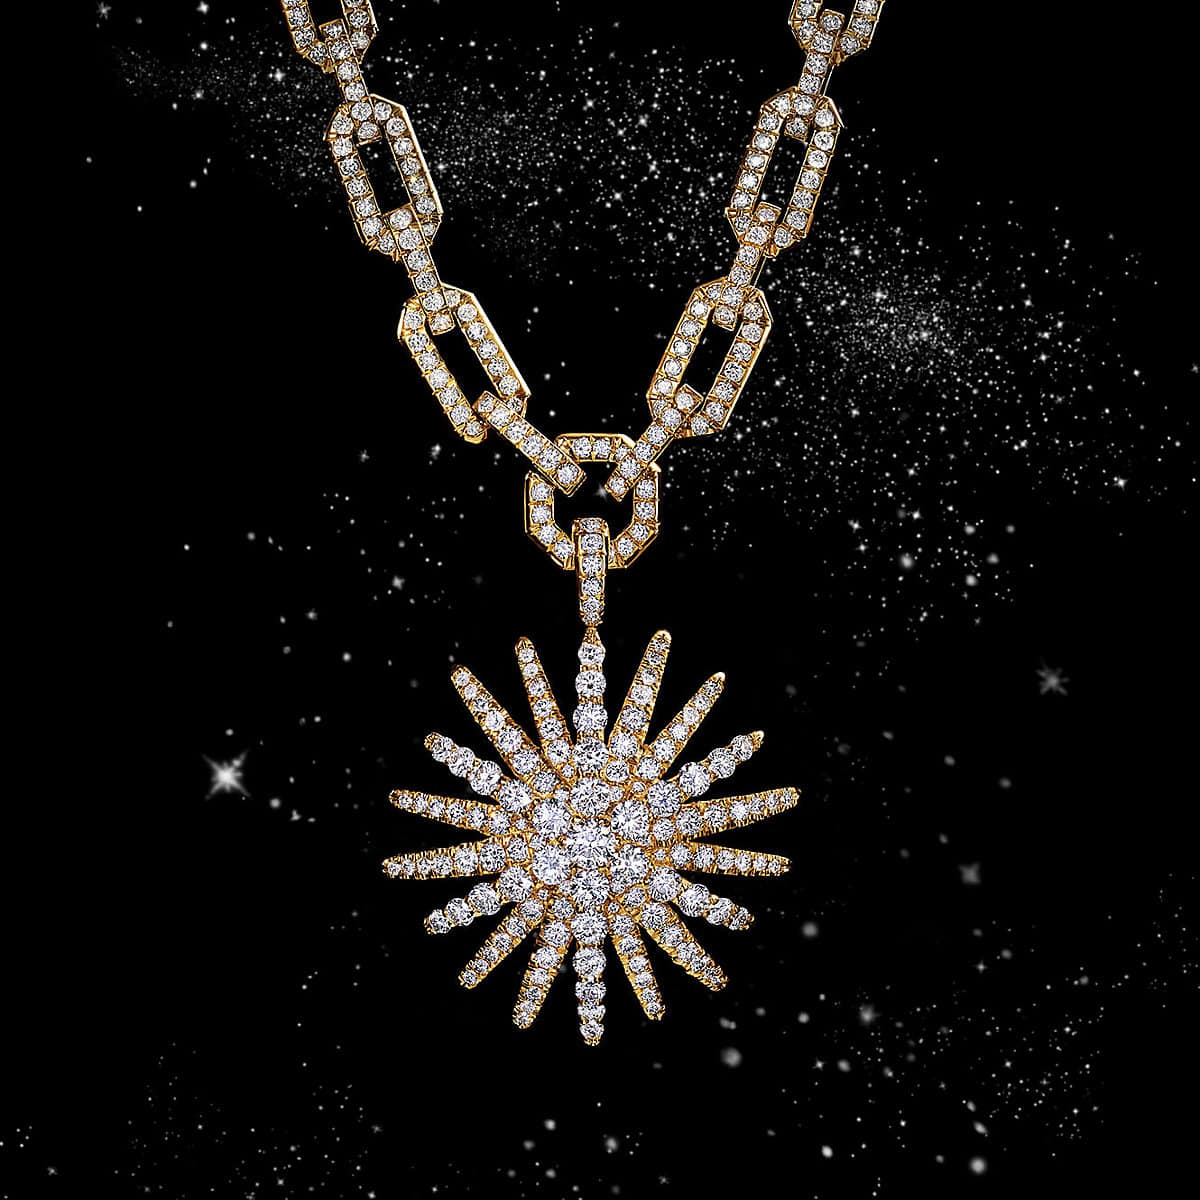 A color photo shows a David Yurman Starburst pendant hanging from a diamond-encrusted chain in front of a starry night sky. The women's jewelry is crafted from 18K yellow gold with pavé diamonds in the shape of a star.